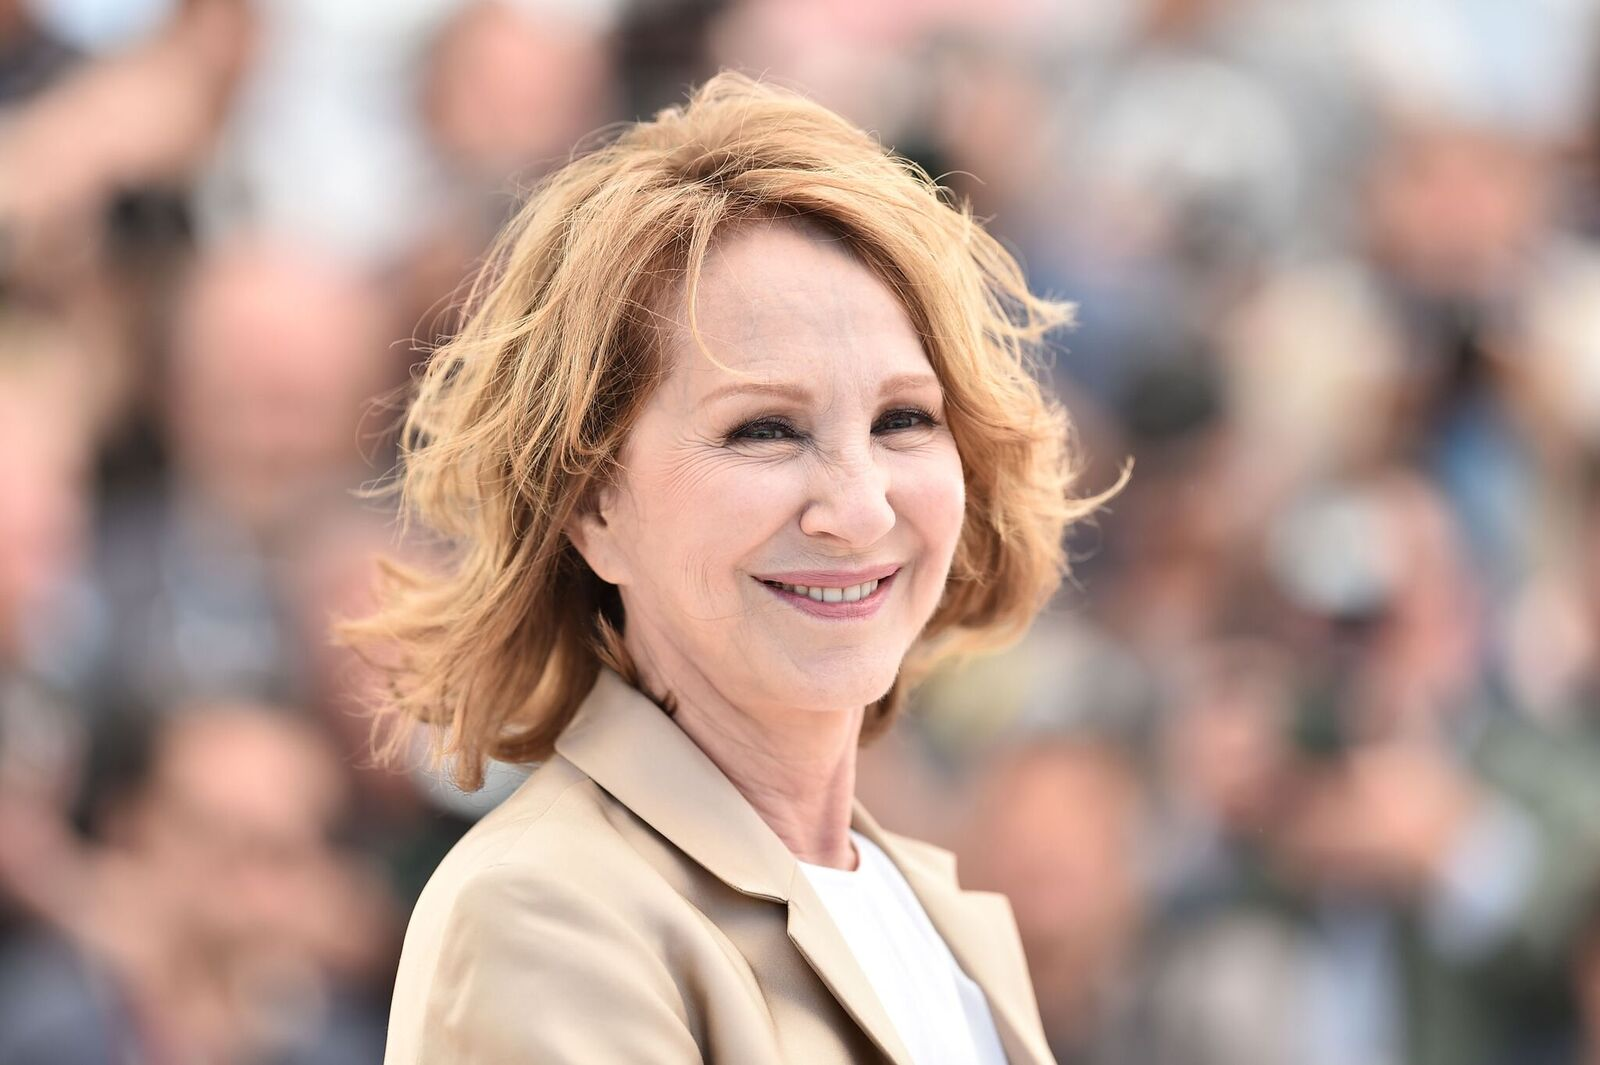 Nathalie Baye assiste au Palais des Festivals le 19 mai 2016 à Cannes, France. |  Photo : Getty Images